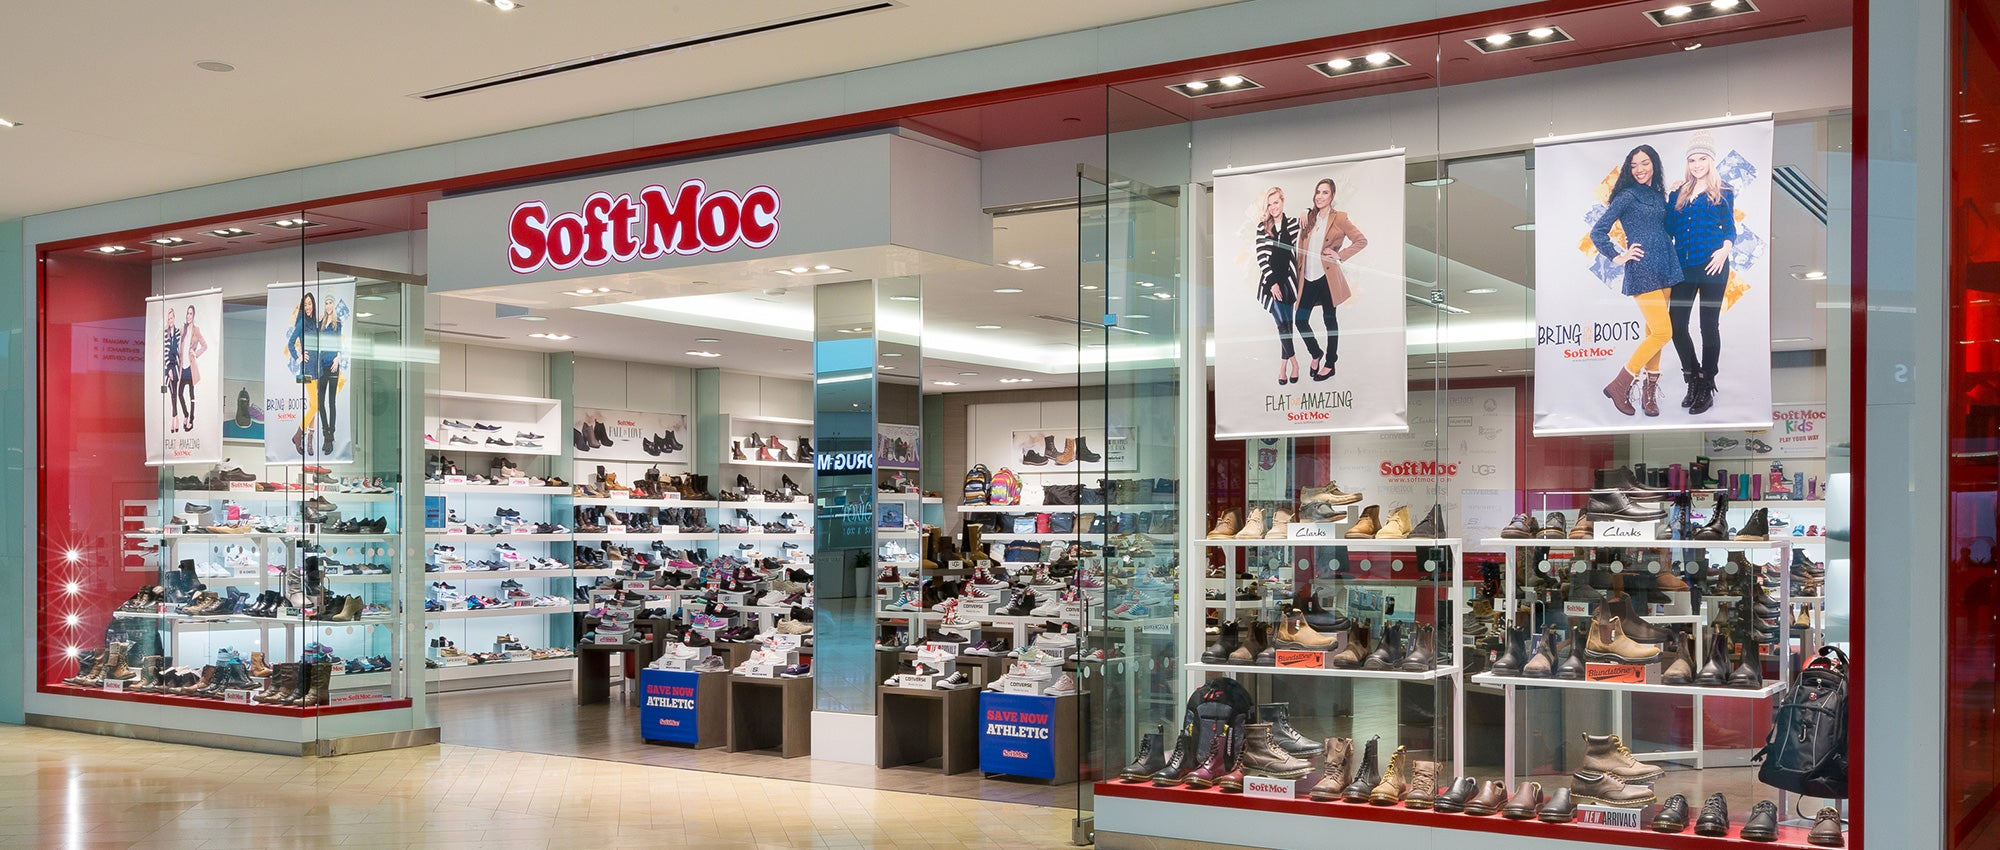 List Of Shoe Stores In Eaton Centre